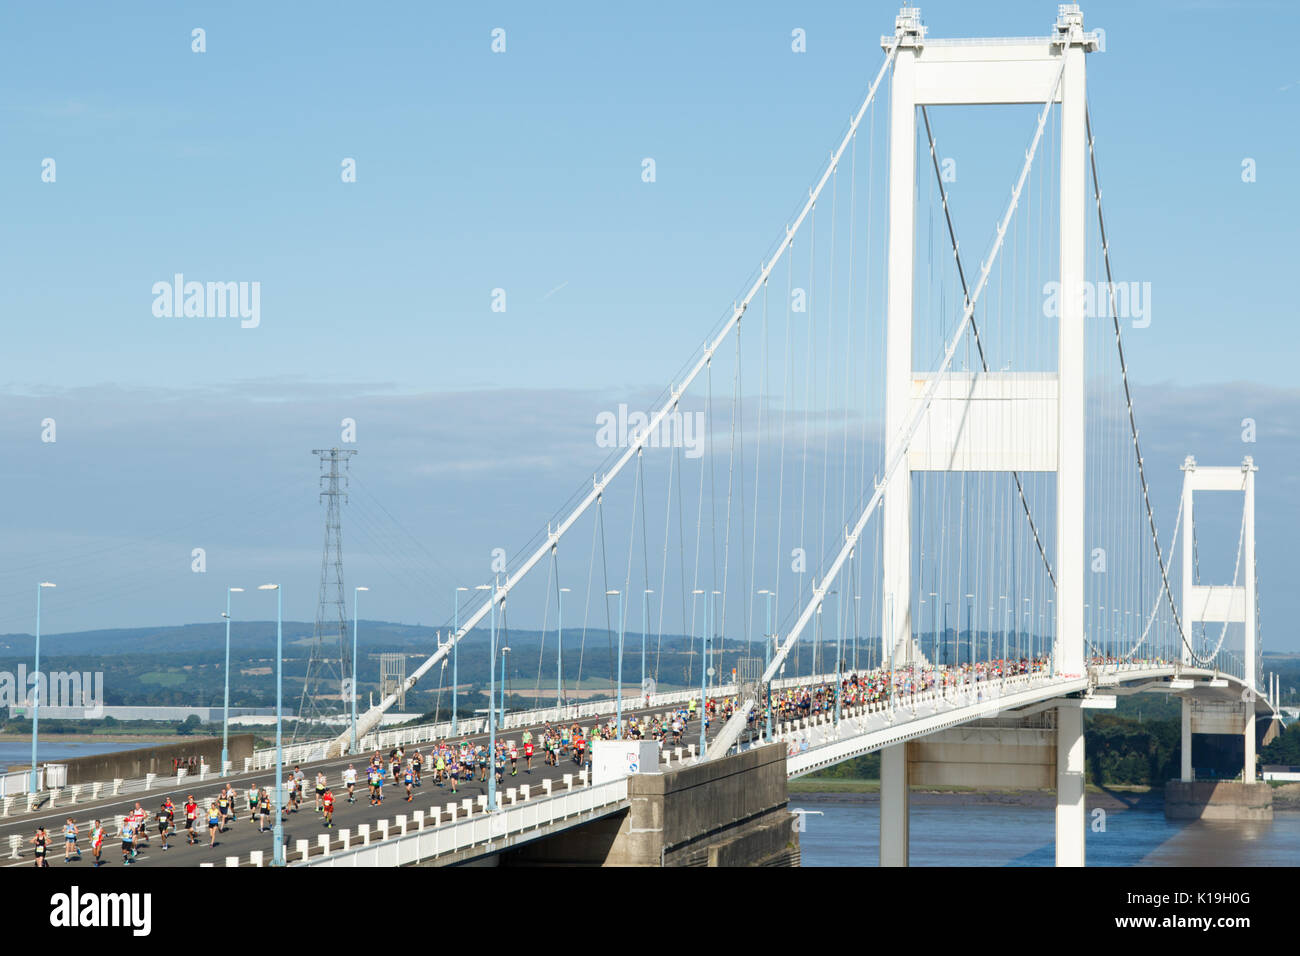 Severn Bridge Half Marathon, South Glouceshire, UK.  27 August 2017.  UK weather:  About 2500 runners take part in the annual Severn Bridge Half Marathon in gorgeous sunshine this morning on the M48, starting and ending on the Welsh side.  The event started at 9:00am with a seperate 10k run at 9:45 am, with many running for charity.  Credit: Andrew Bartlett/Alamy Live News - Stock Image